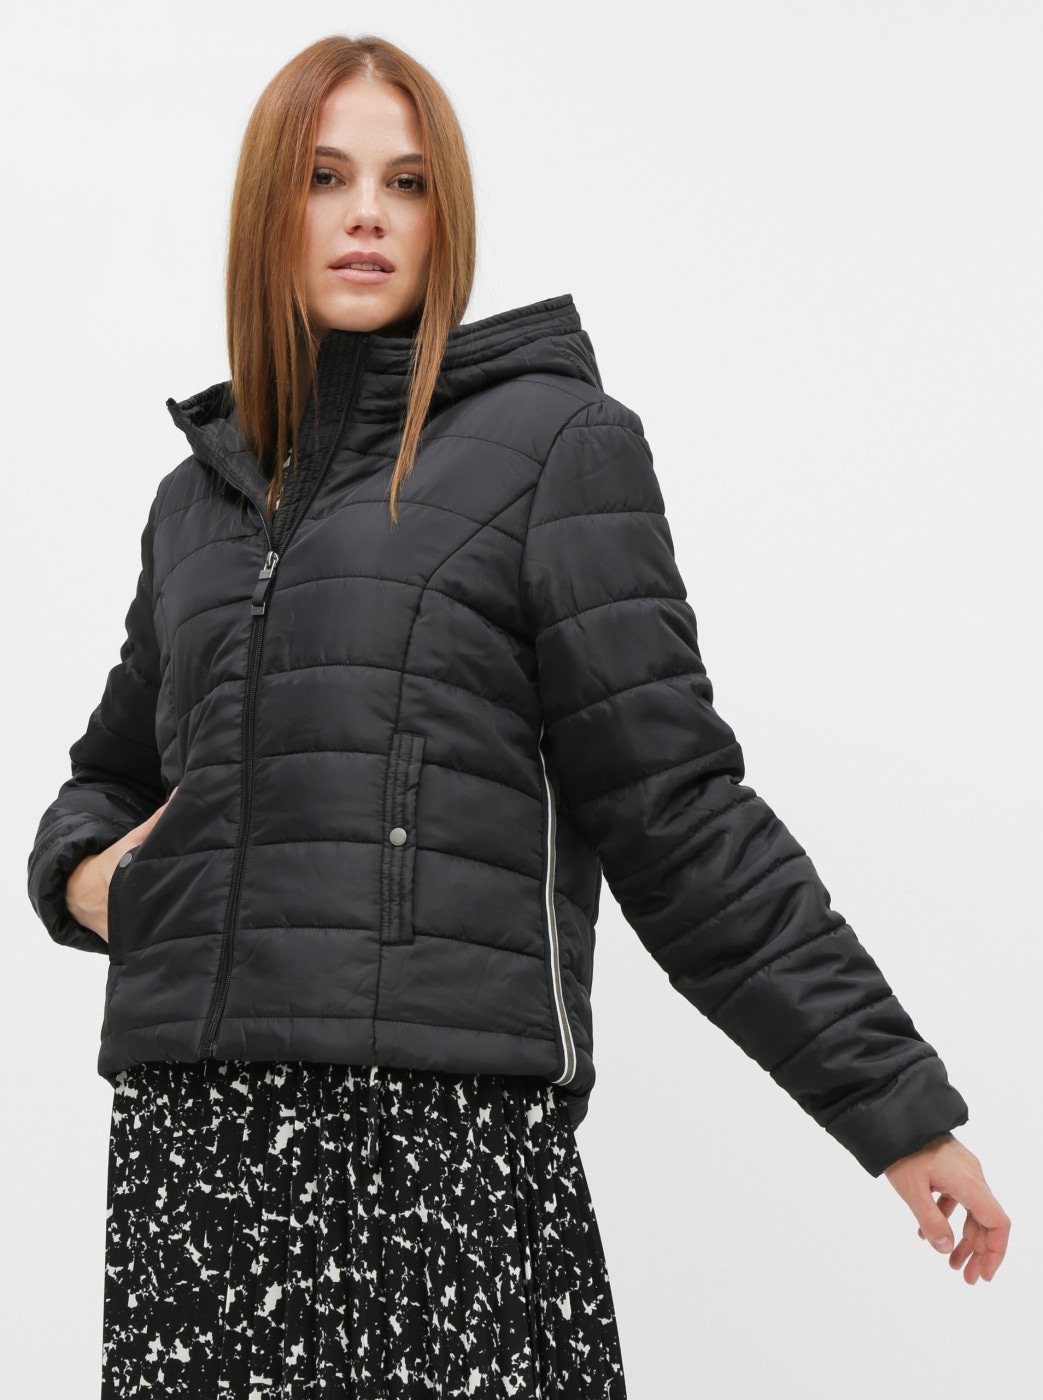 Vero MODA Simone Black Quilted Winter Jacket